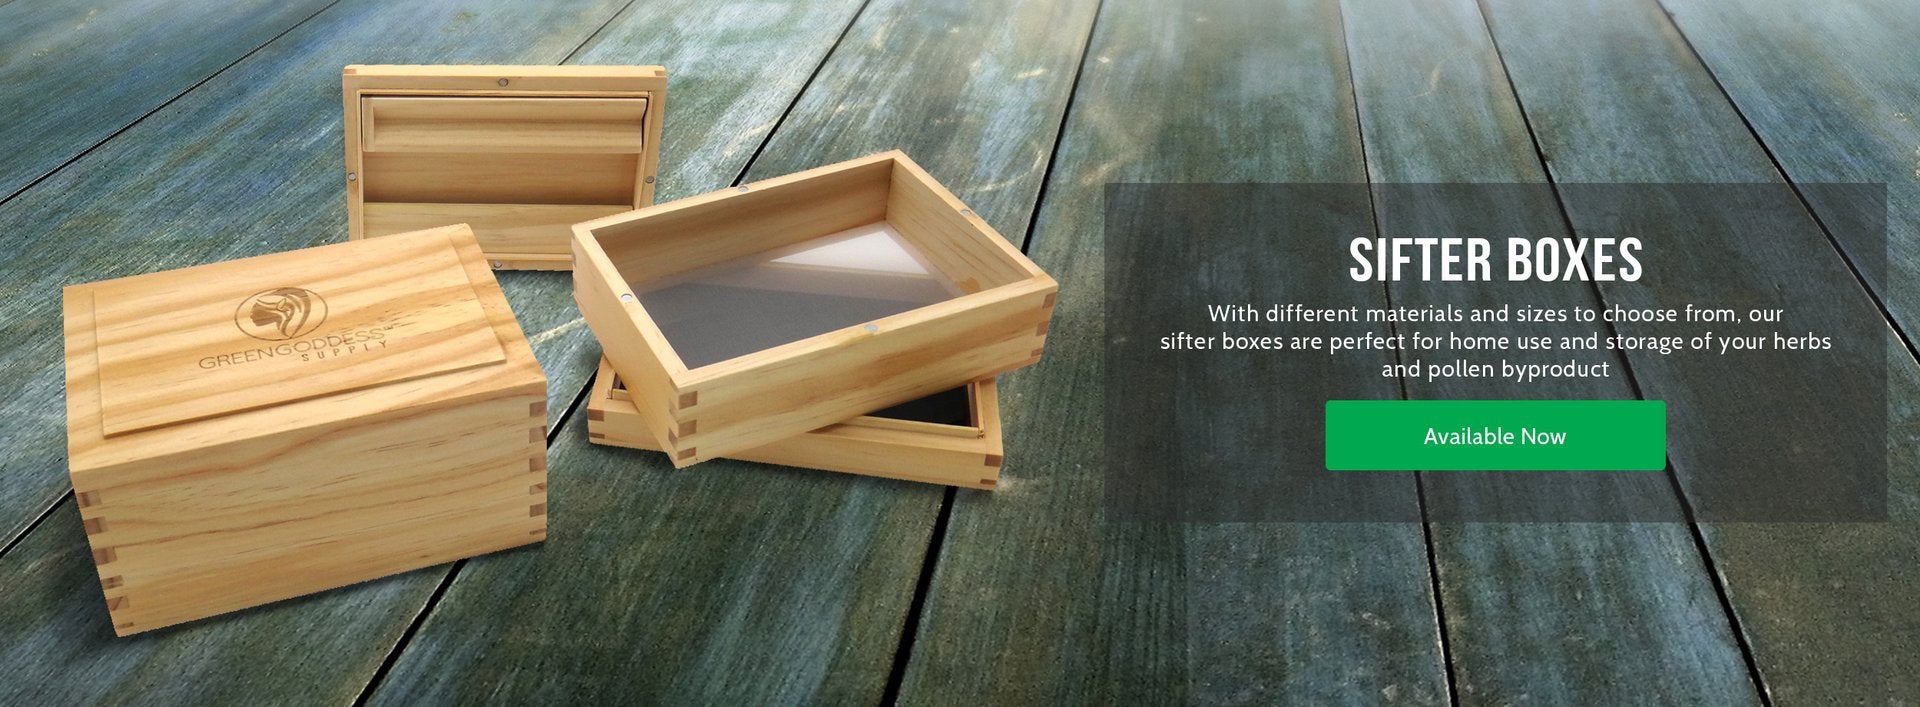 Sifter Boxes